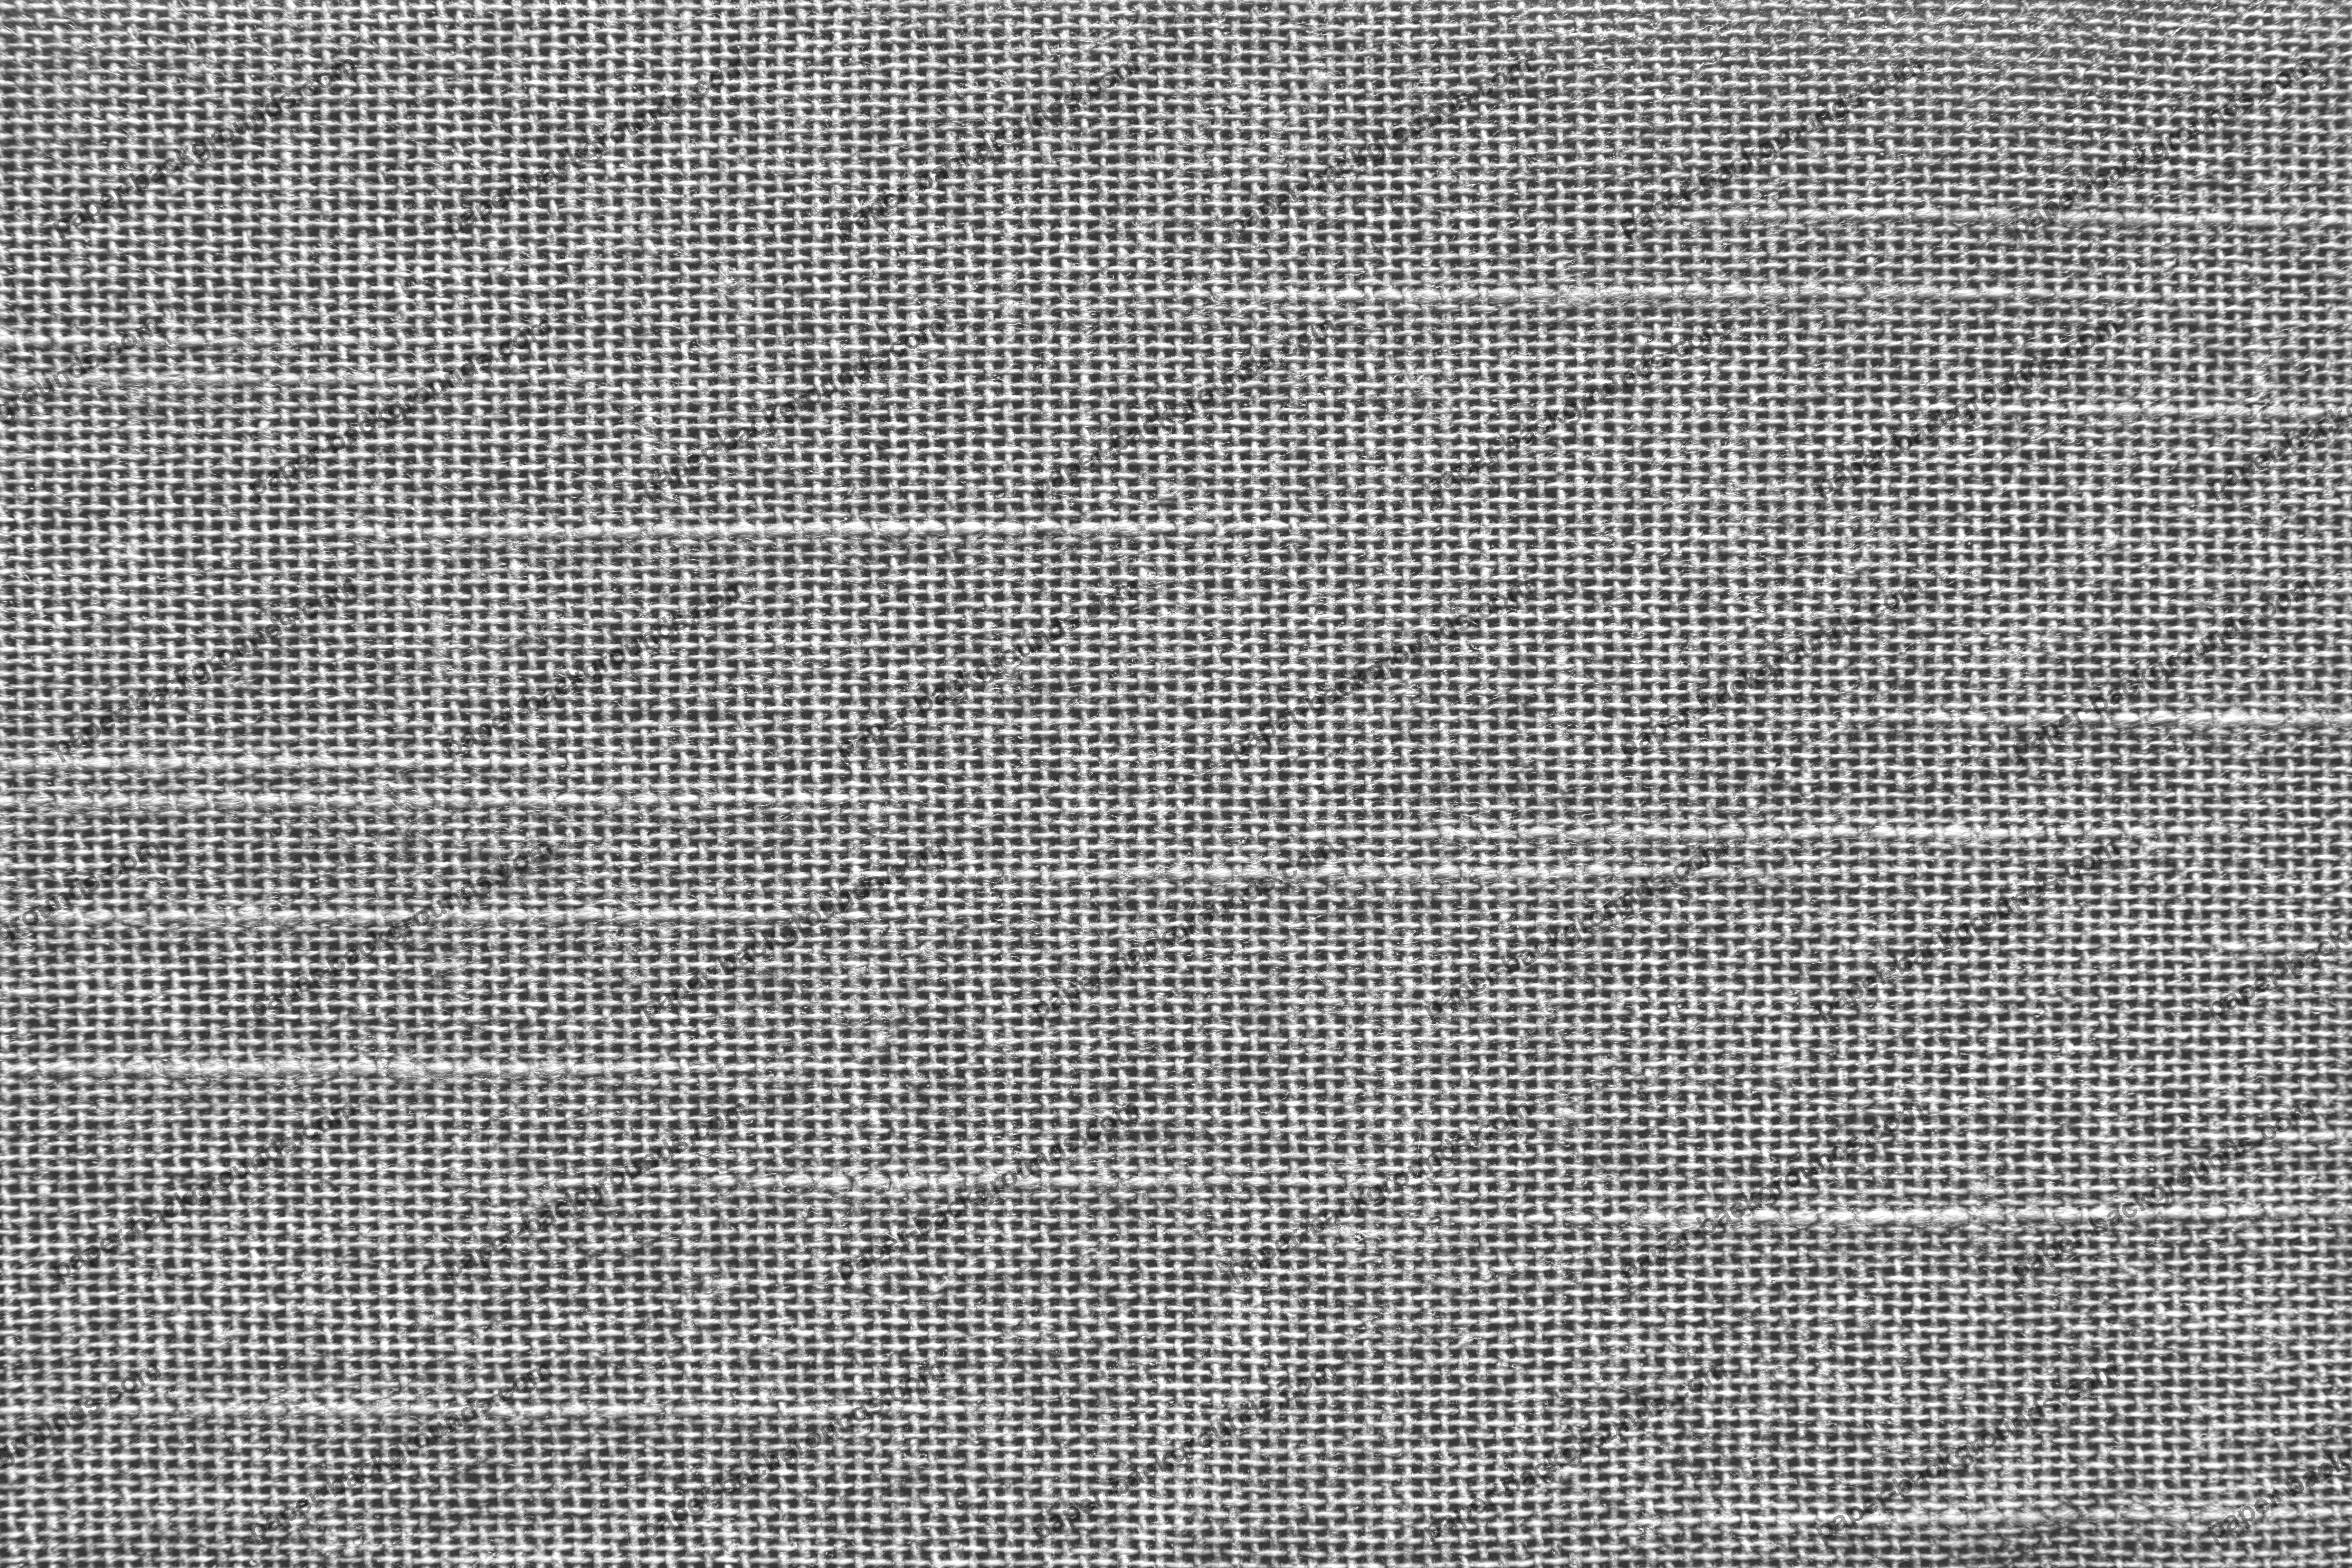 Paper Backgrounds Gray Canvas Texture